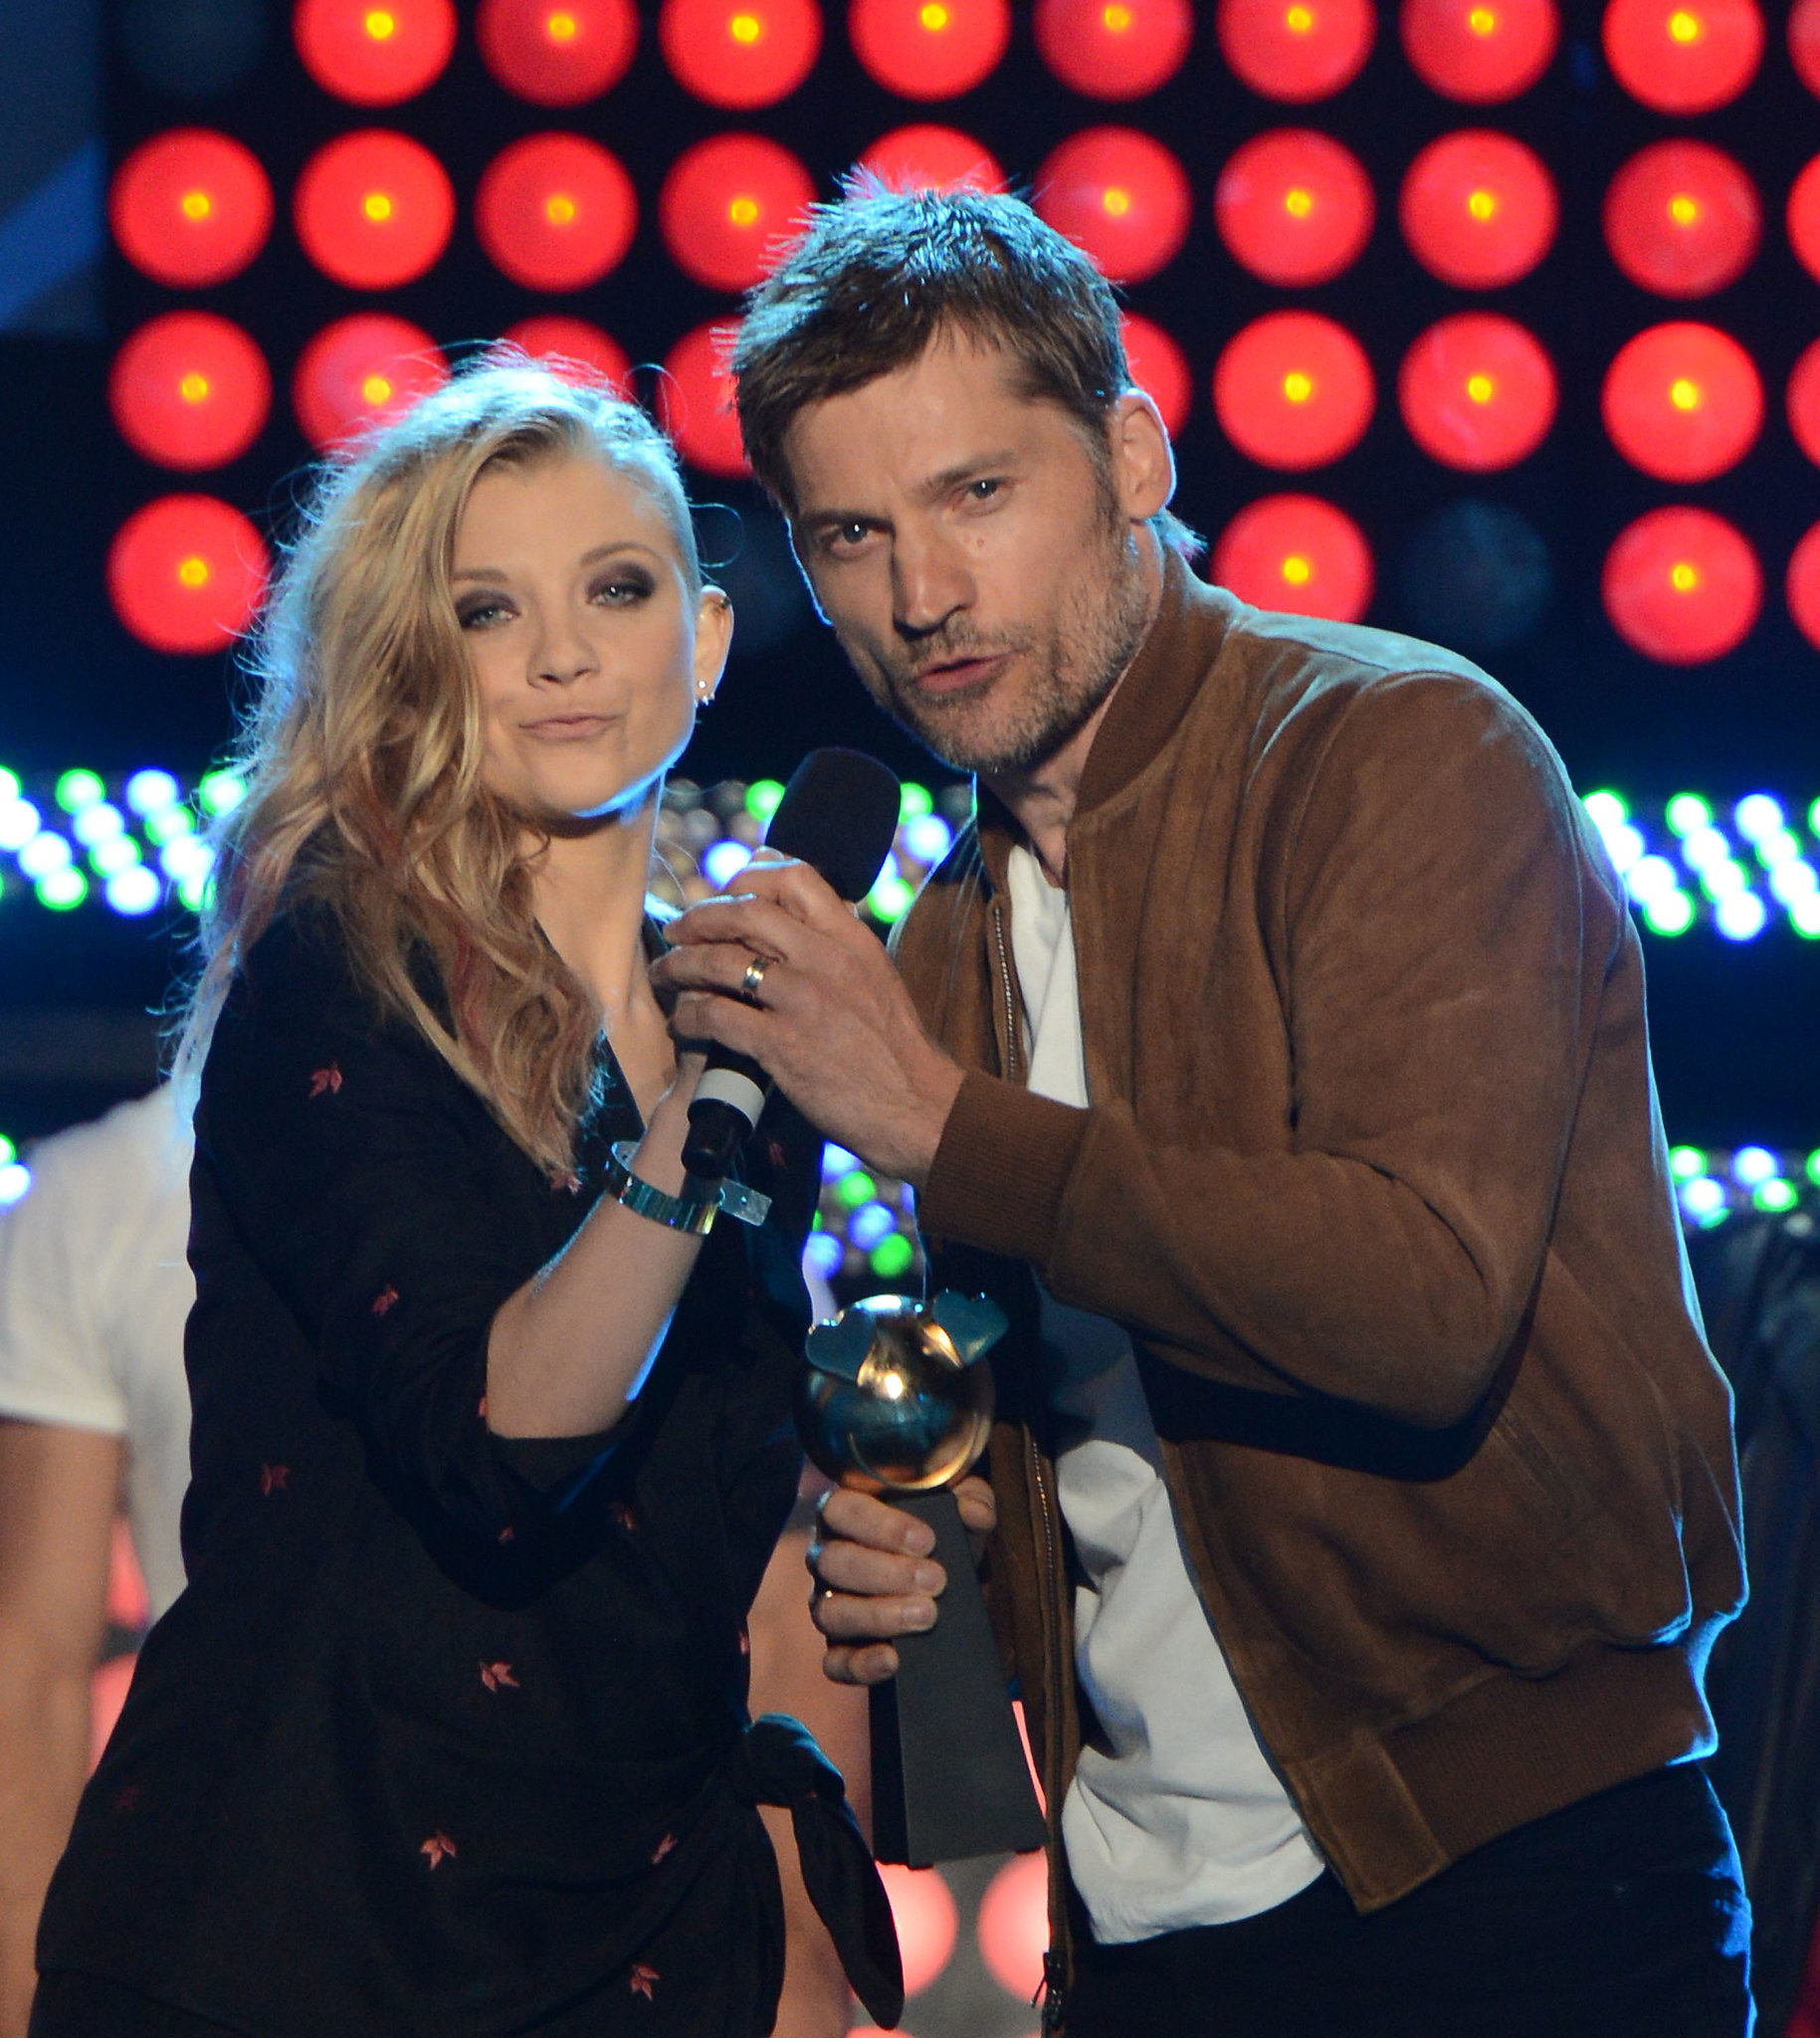 Game of Thrones' Natalie Dormer and Nikolaj Coster-Waldau took the stage at the MTVu Fandom Awards on Thursday.